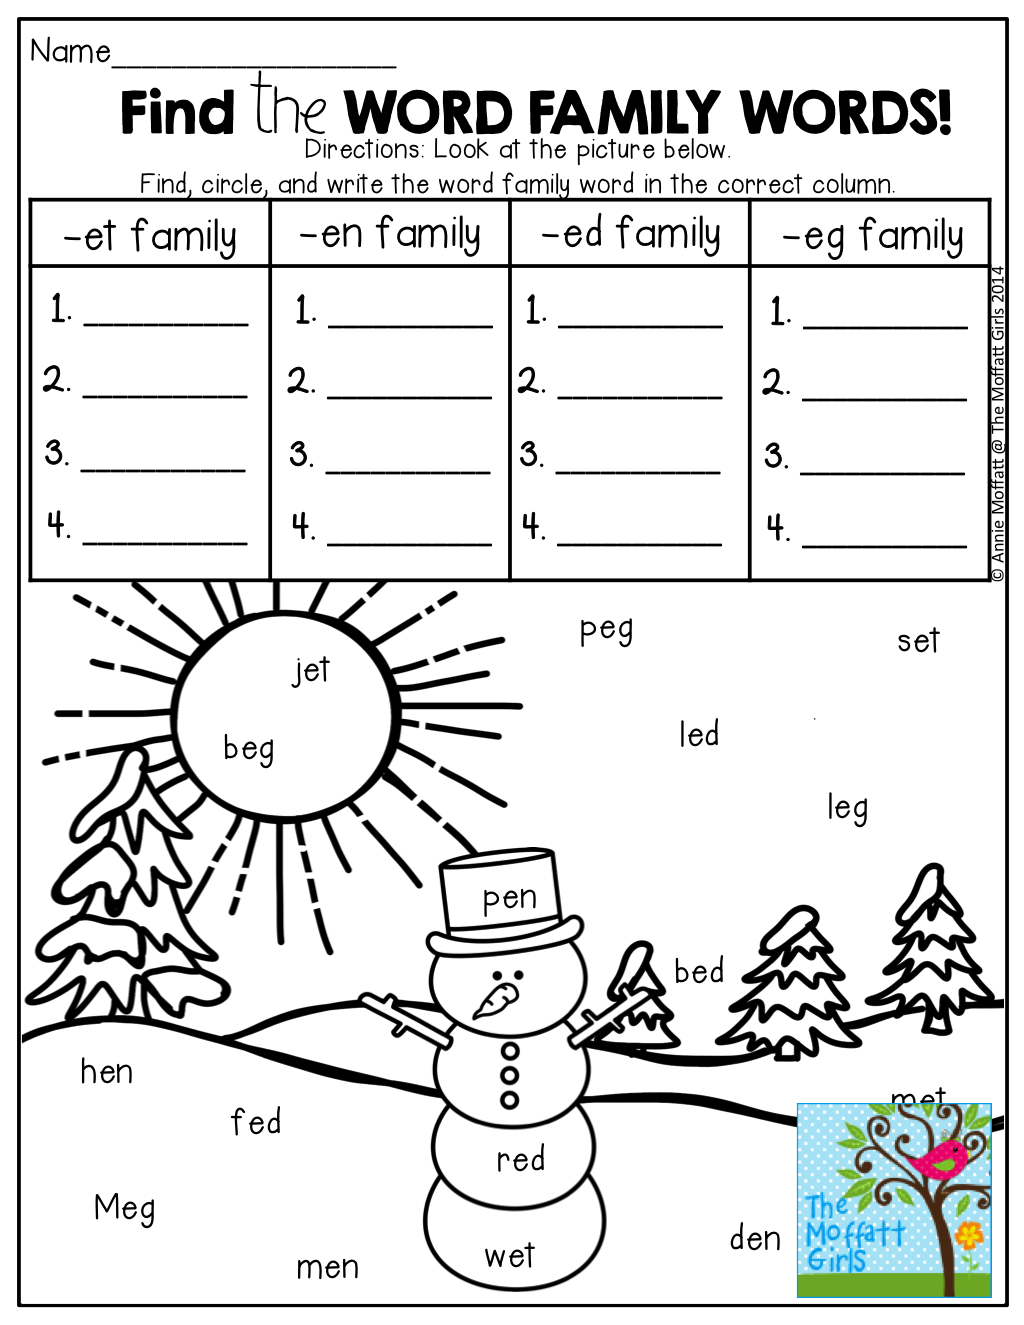 Find The Hidden Word Family Words And Write Them In The Correct Column So Many Fun Printables